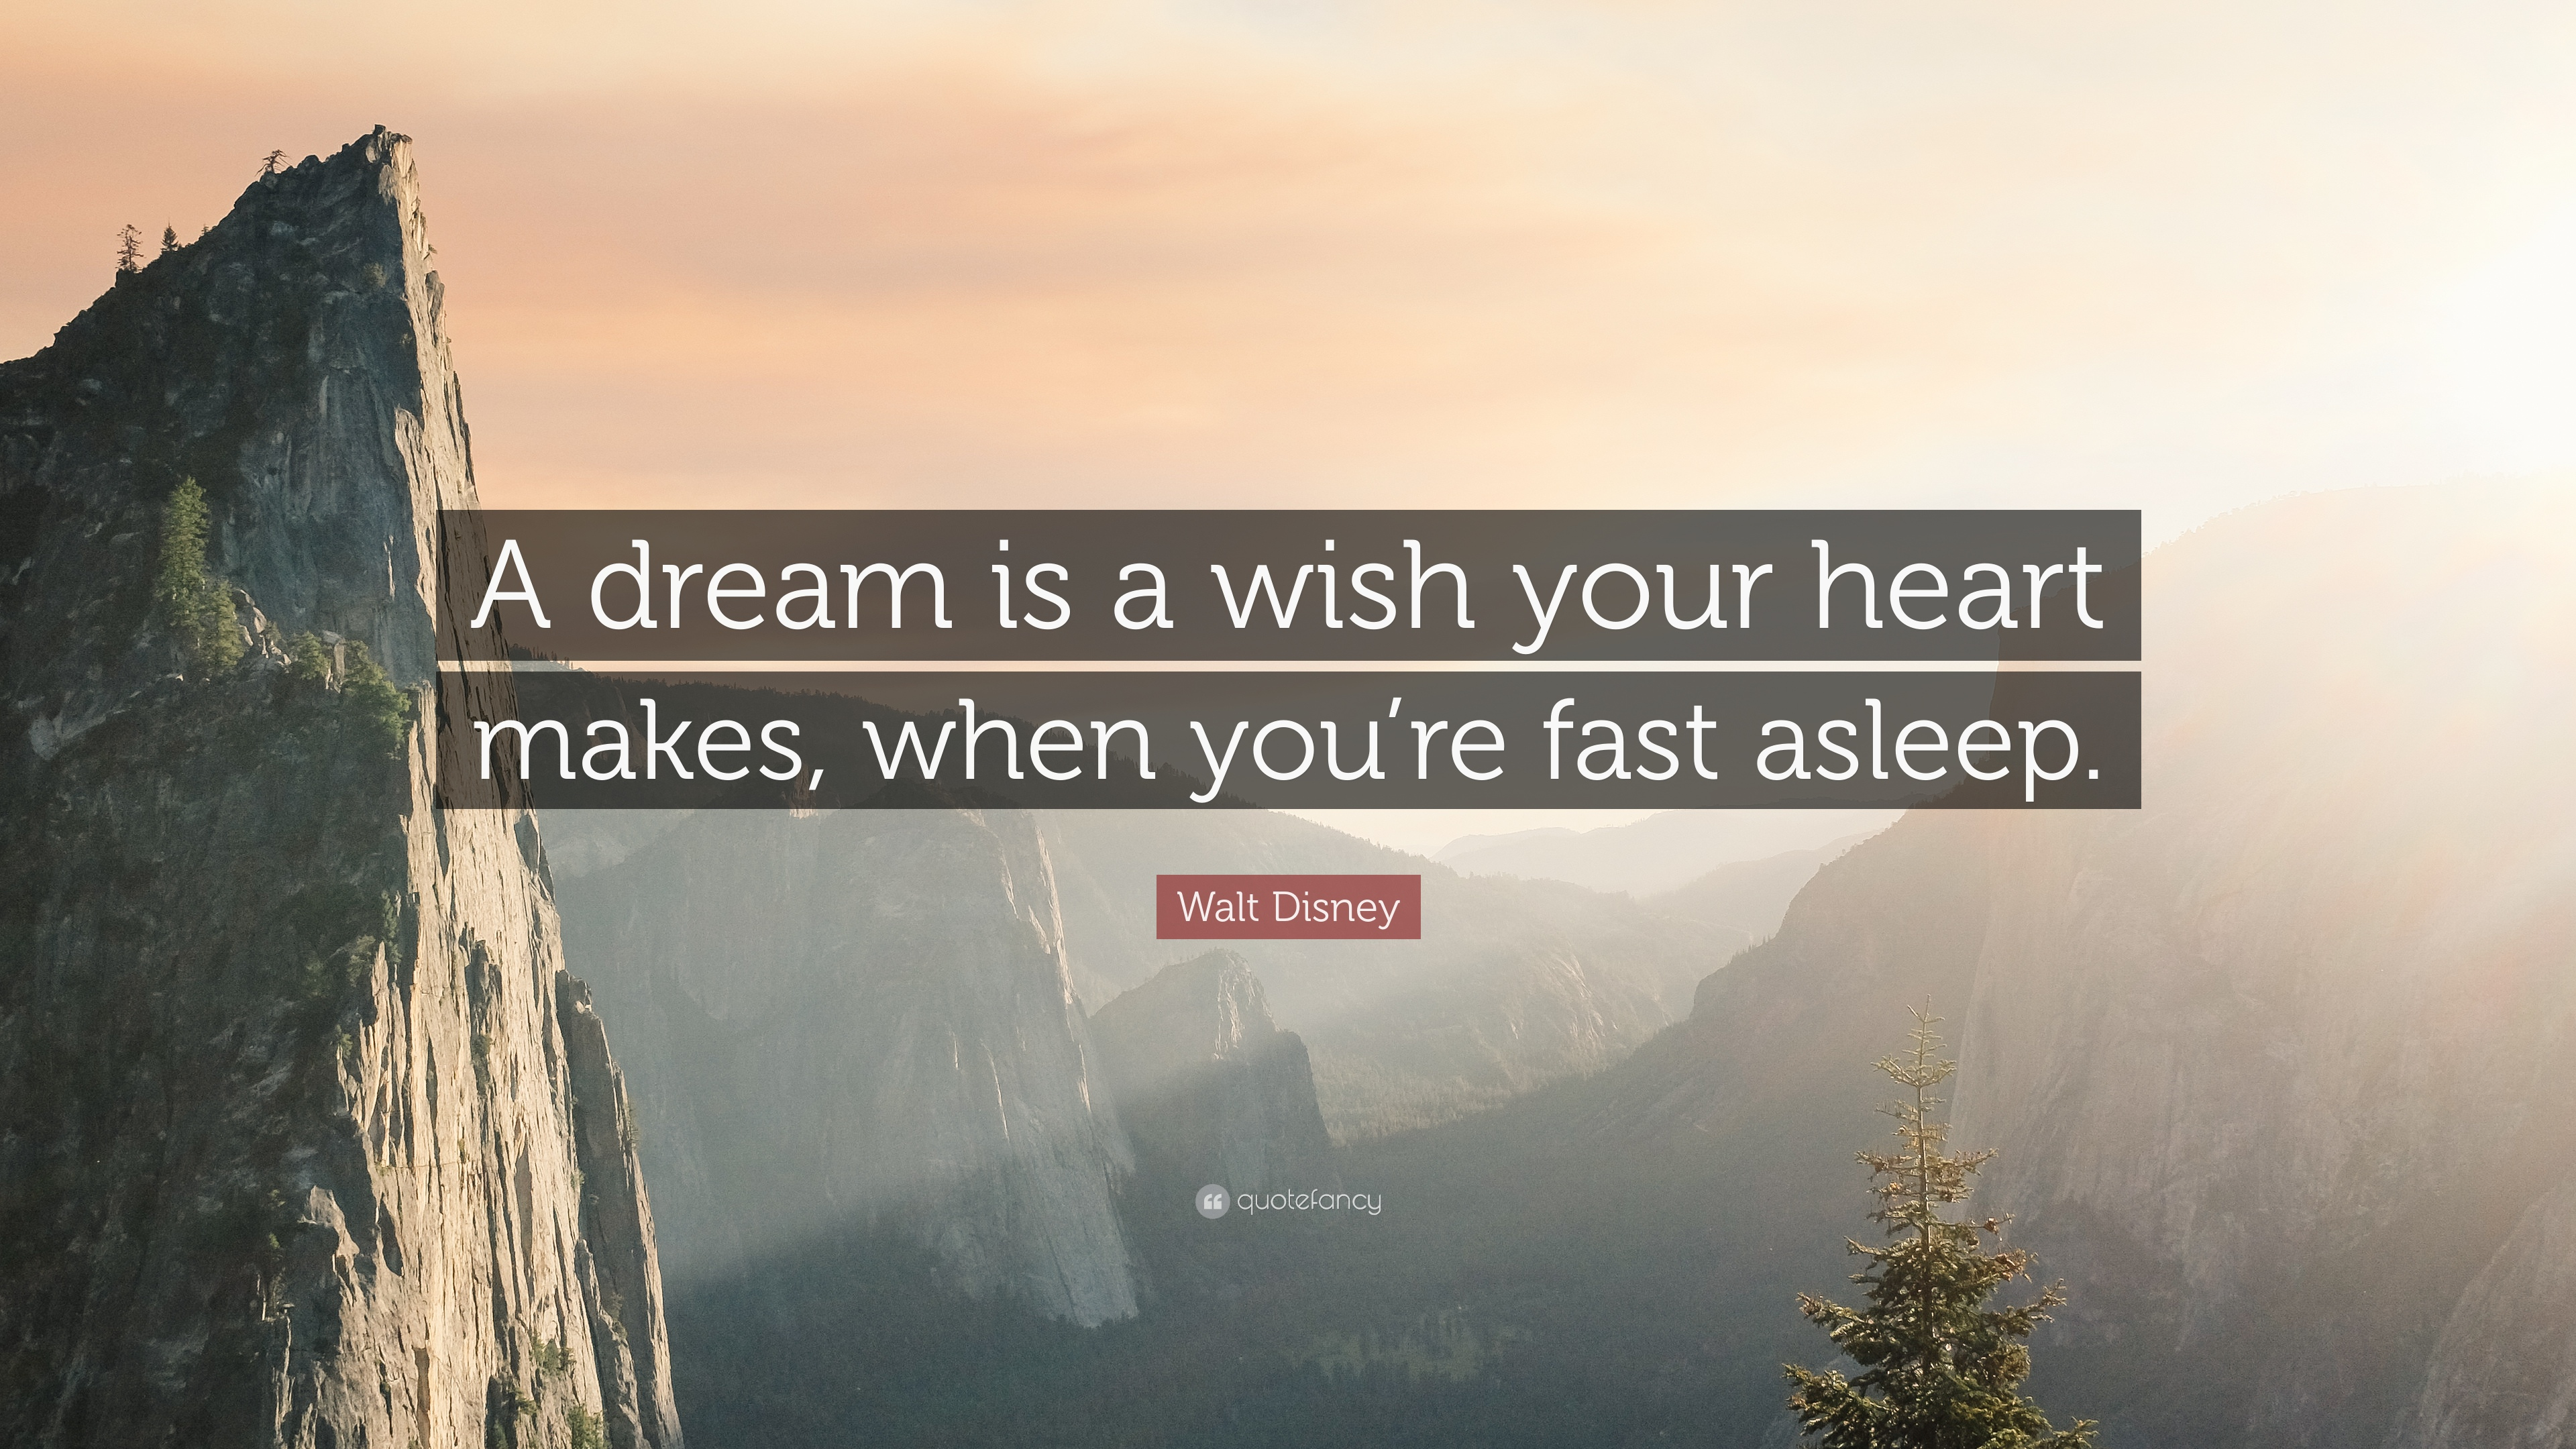 Walt Disney Quote: U201cA Dream Is A Wish Your Heart Makes, When You